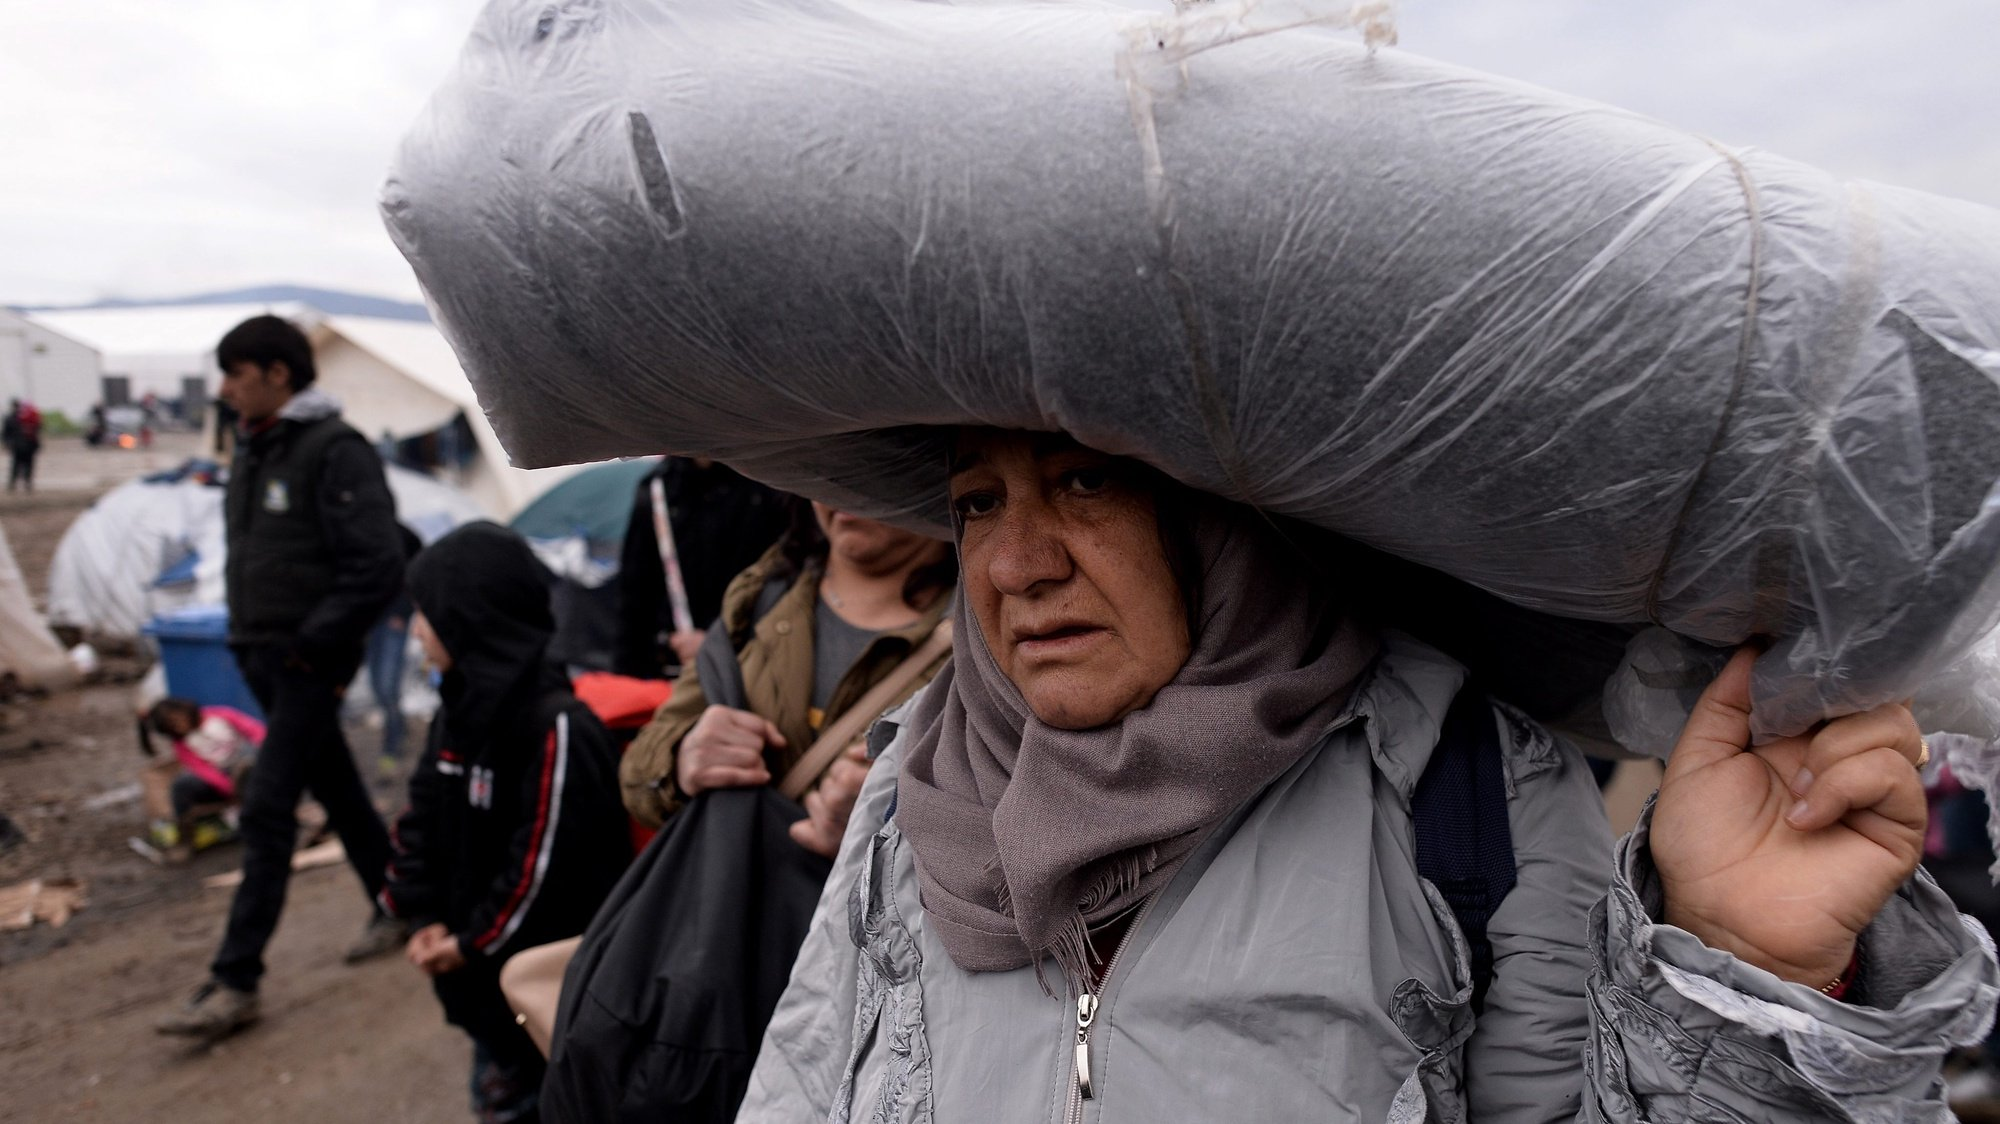 epa05214864 A migrant carries a blanket, at a refugee camp at the border between Greece and the Former Yugoslav Republic of Macedonia (FYROM) near Idomeni, Northern Greece, 15 March 2016. Greek Prime Minister Alxis Tsipras on 15 March called on refugees to allow the Athens government to move them from the Idomeni camp to other reception centers, stressing that the borders are closed and will not be reopened in the near future. Greece has registered more than 44,000 migrants that are currently trapped due to entry restrictions already imposed by Macedonia in recent months, by denying entry to all those who are considered economic migrants, prohibiting the passage of Afghans, and finally denying entry to all Syrians and Iraqis who are not from combat areas.  EPA/NAKE BATEV  EPA/NAKE BATEV